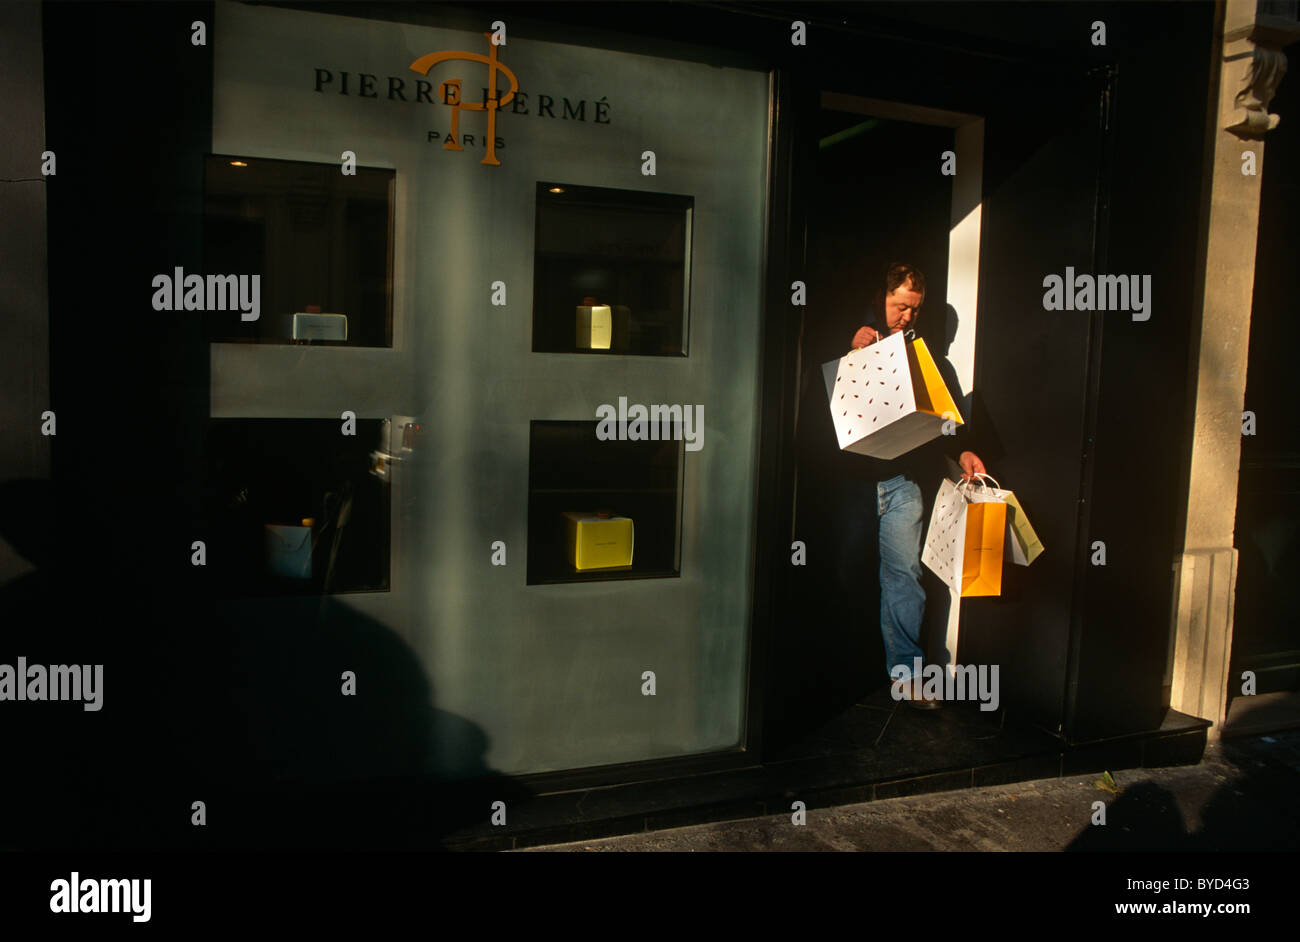 A shopper laden with shopping bags emerges from the Paris chocolatier shop Pierre Hermé on Rue Vaugirard. - Stock Image